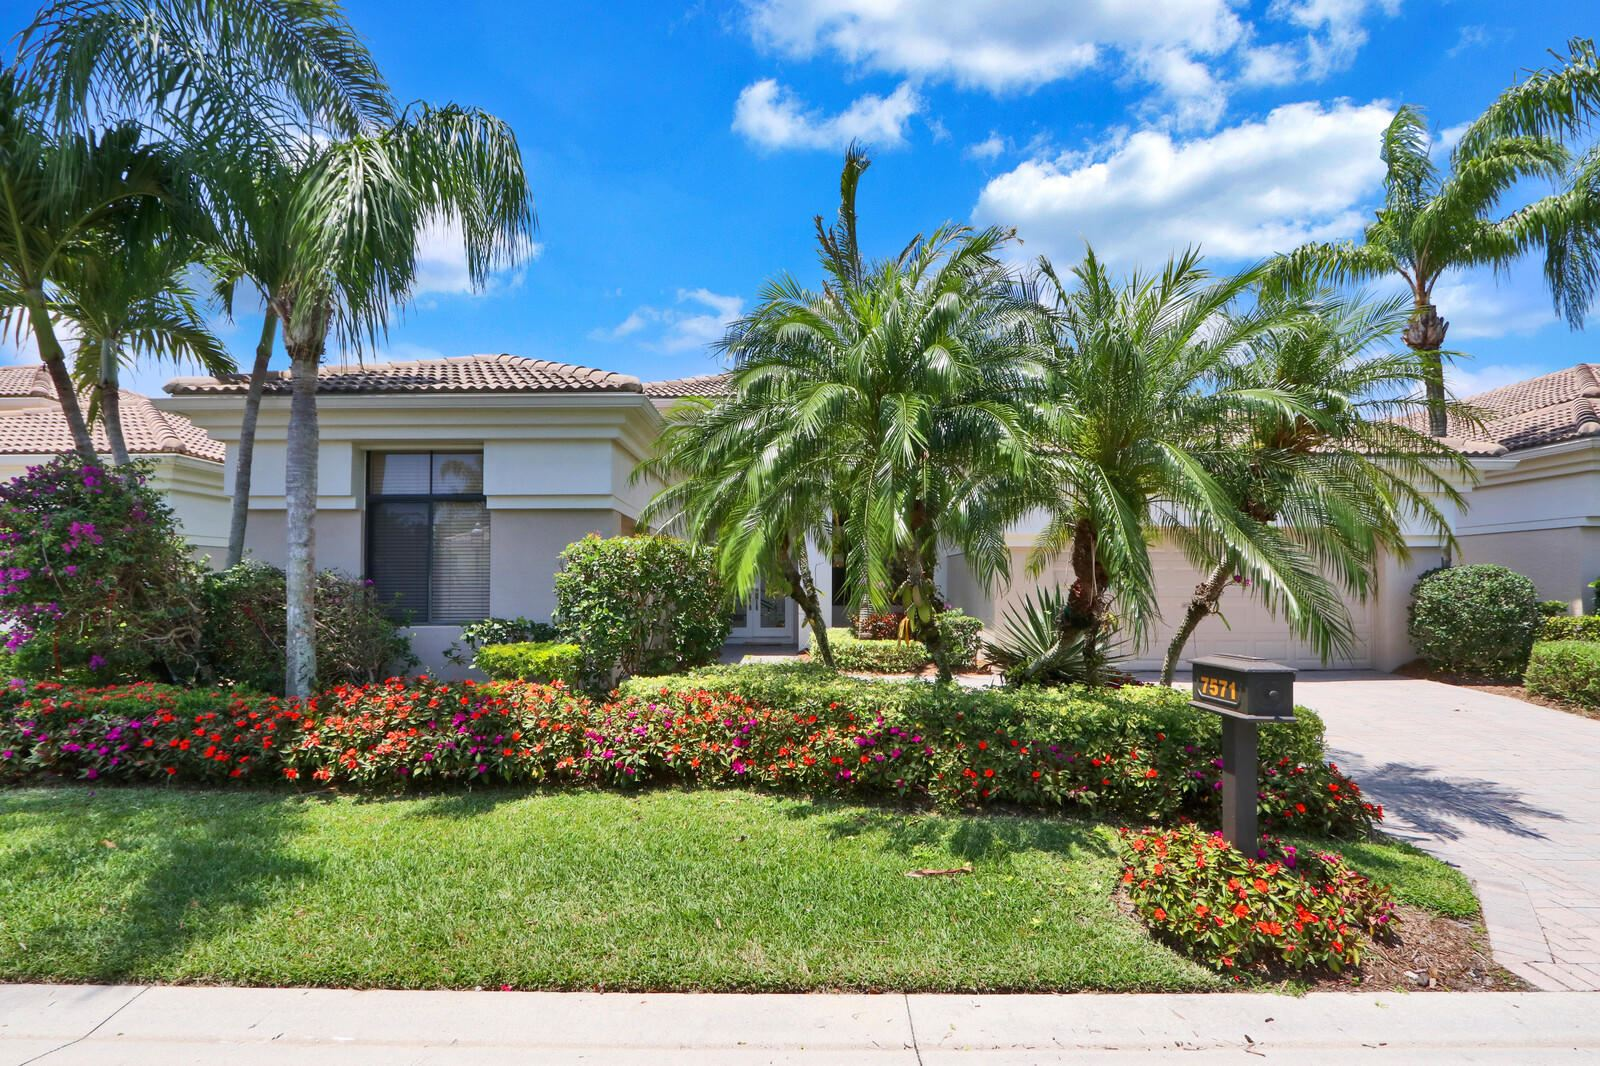 Photo of 7571 Blue Heron Way, West Palm Beach, FL 33412 (MLS # RX-10714223)